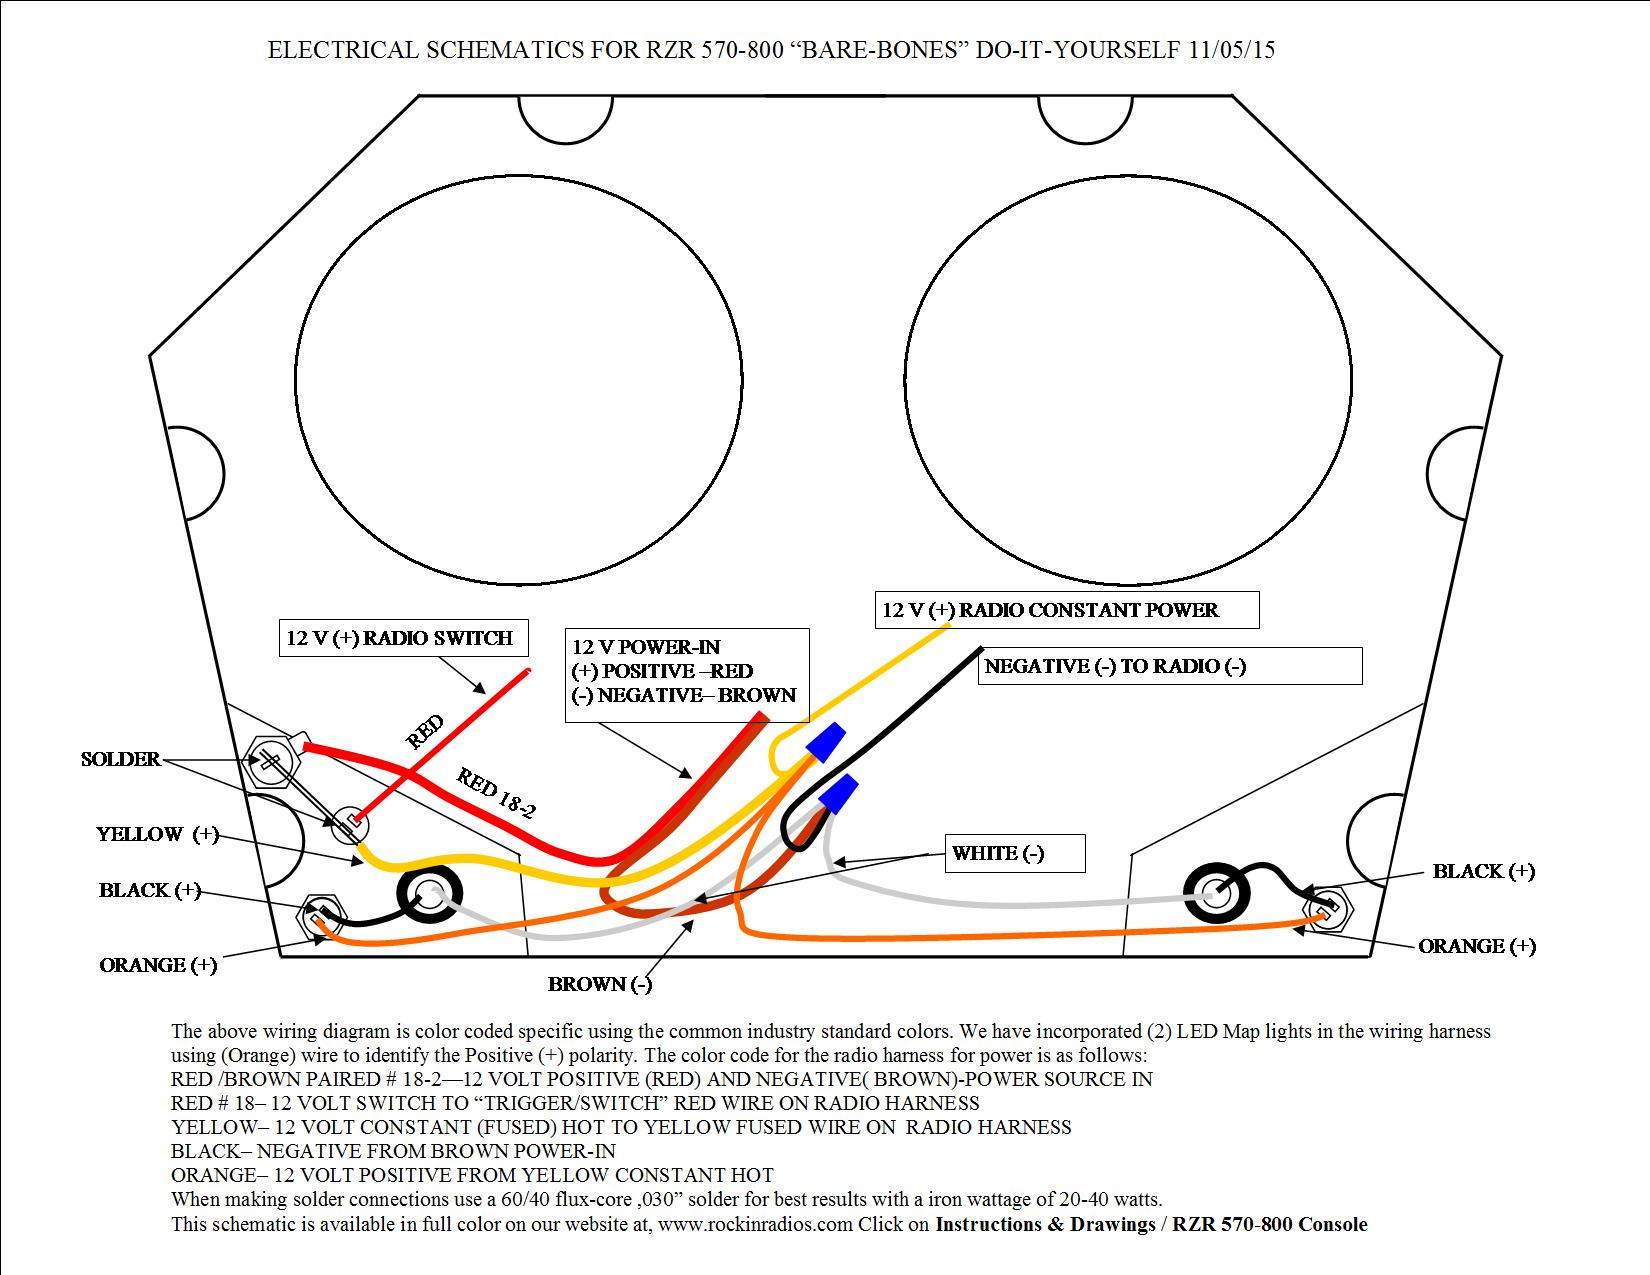 rzr 570 800 drawings wiring diagram